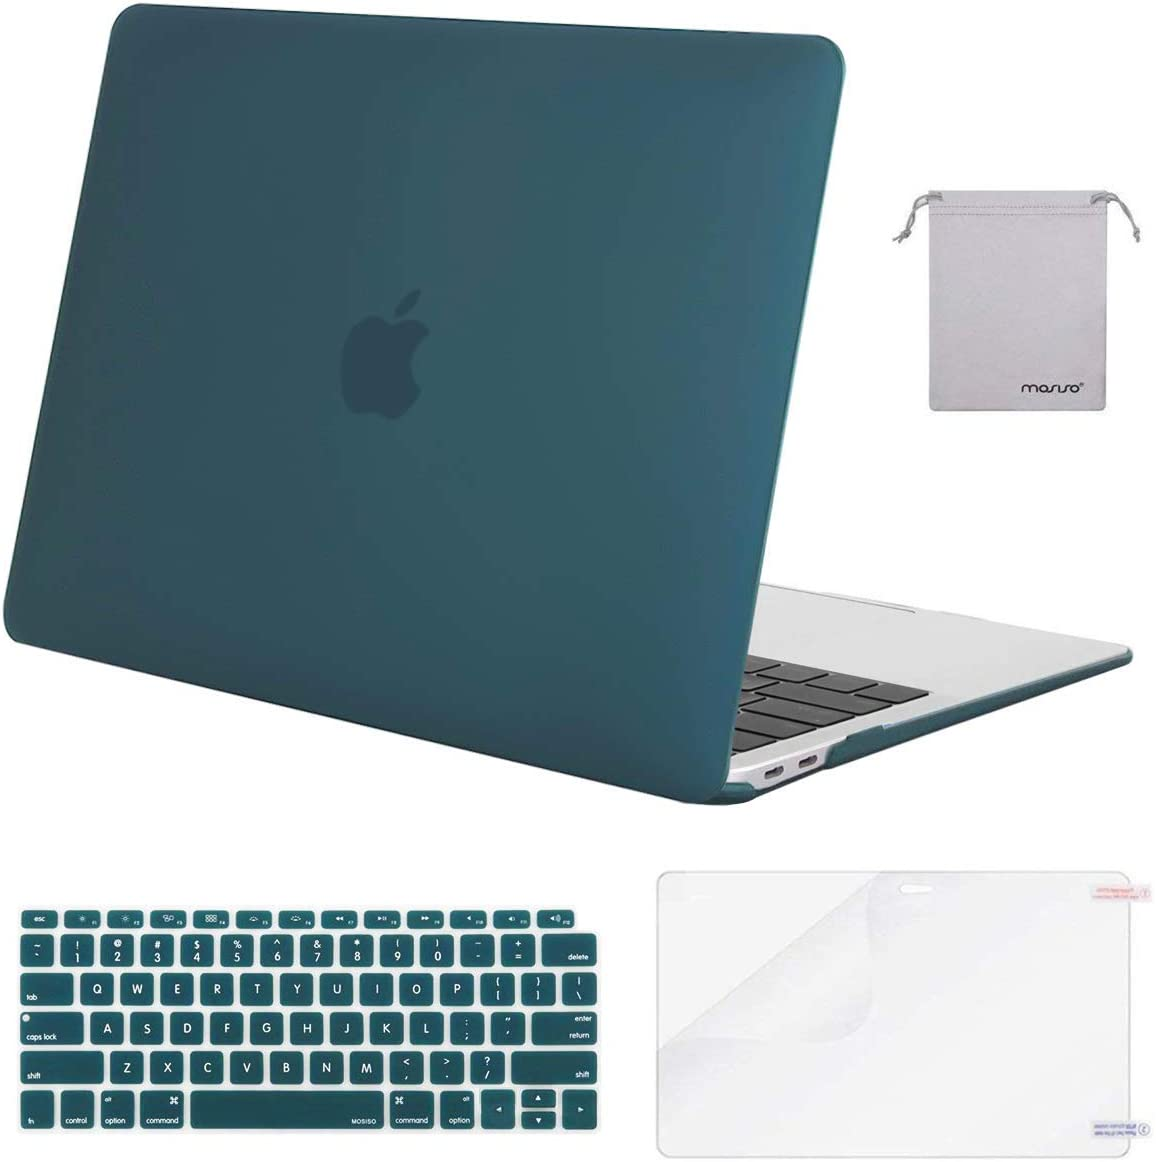 MOSISO MacBook Air 13 inch Case 2020 2019 2018 Release A2179 A1932 with Retina Display Midnight Green Plastic Hard Shell/&Keyboard Cover/&Screen Protector/&Storage Bag Compatible with MacBook Air 13